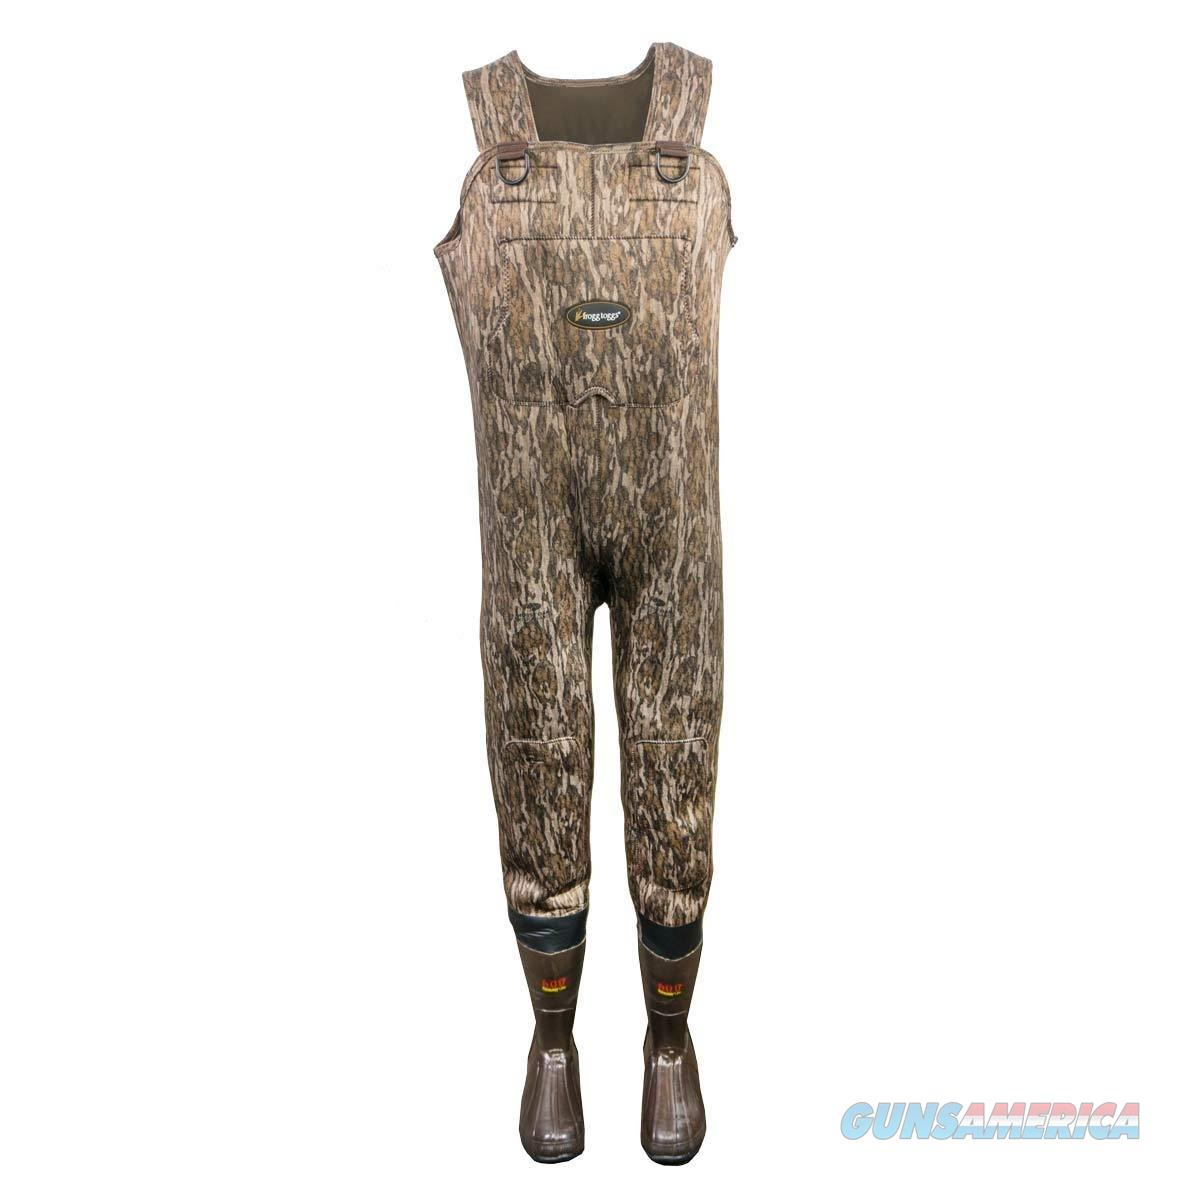 Frogg Toggs Chest Waders Bottomland Size 14  Non-Guns > Hunting Clothing and Equipment > Clothing > Camo Outerwear